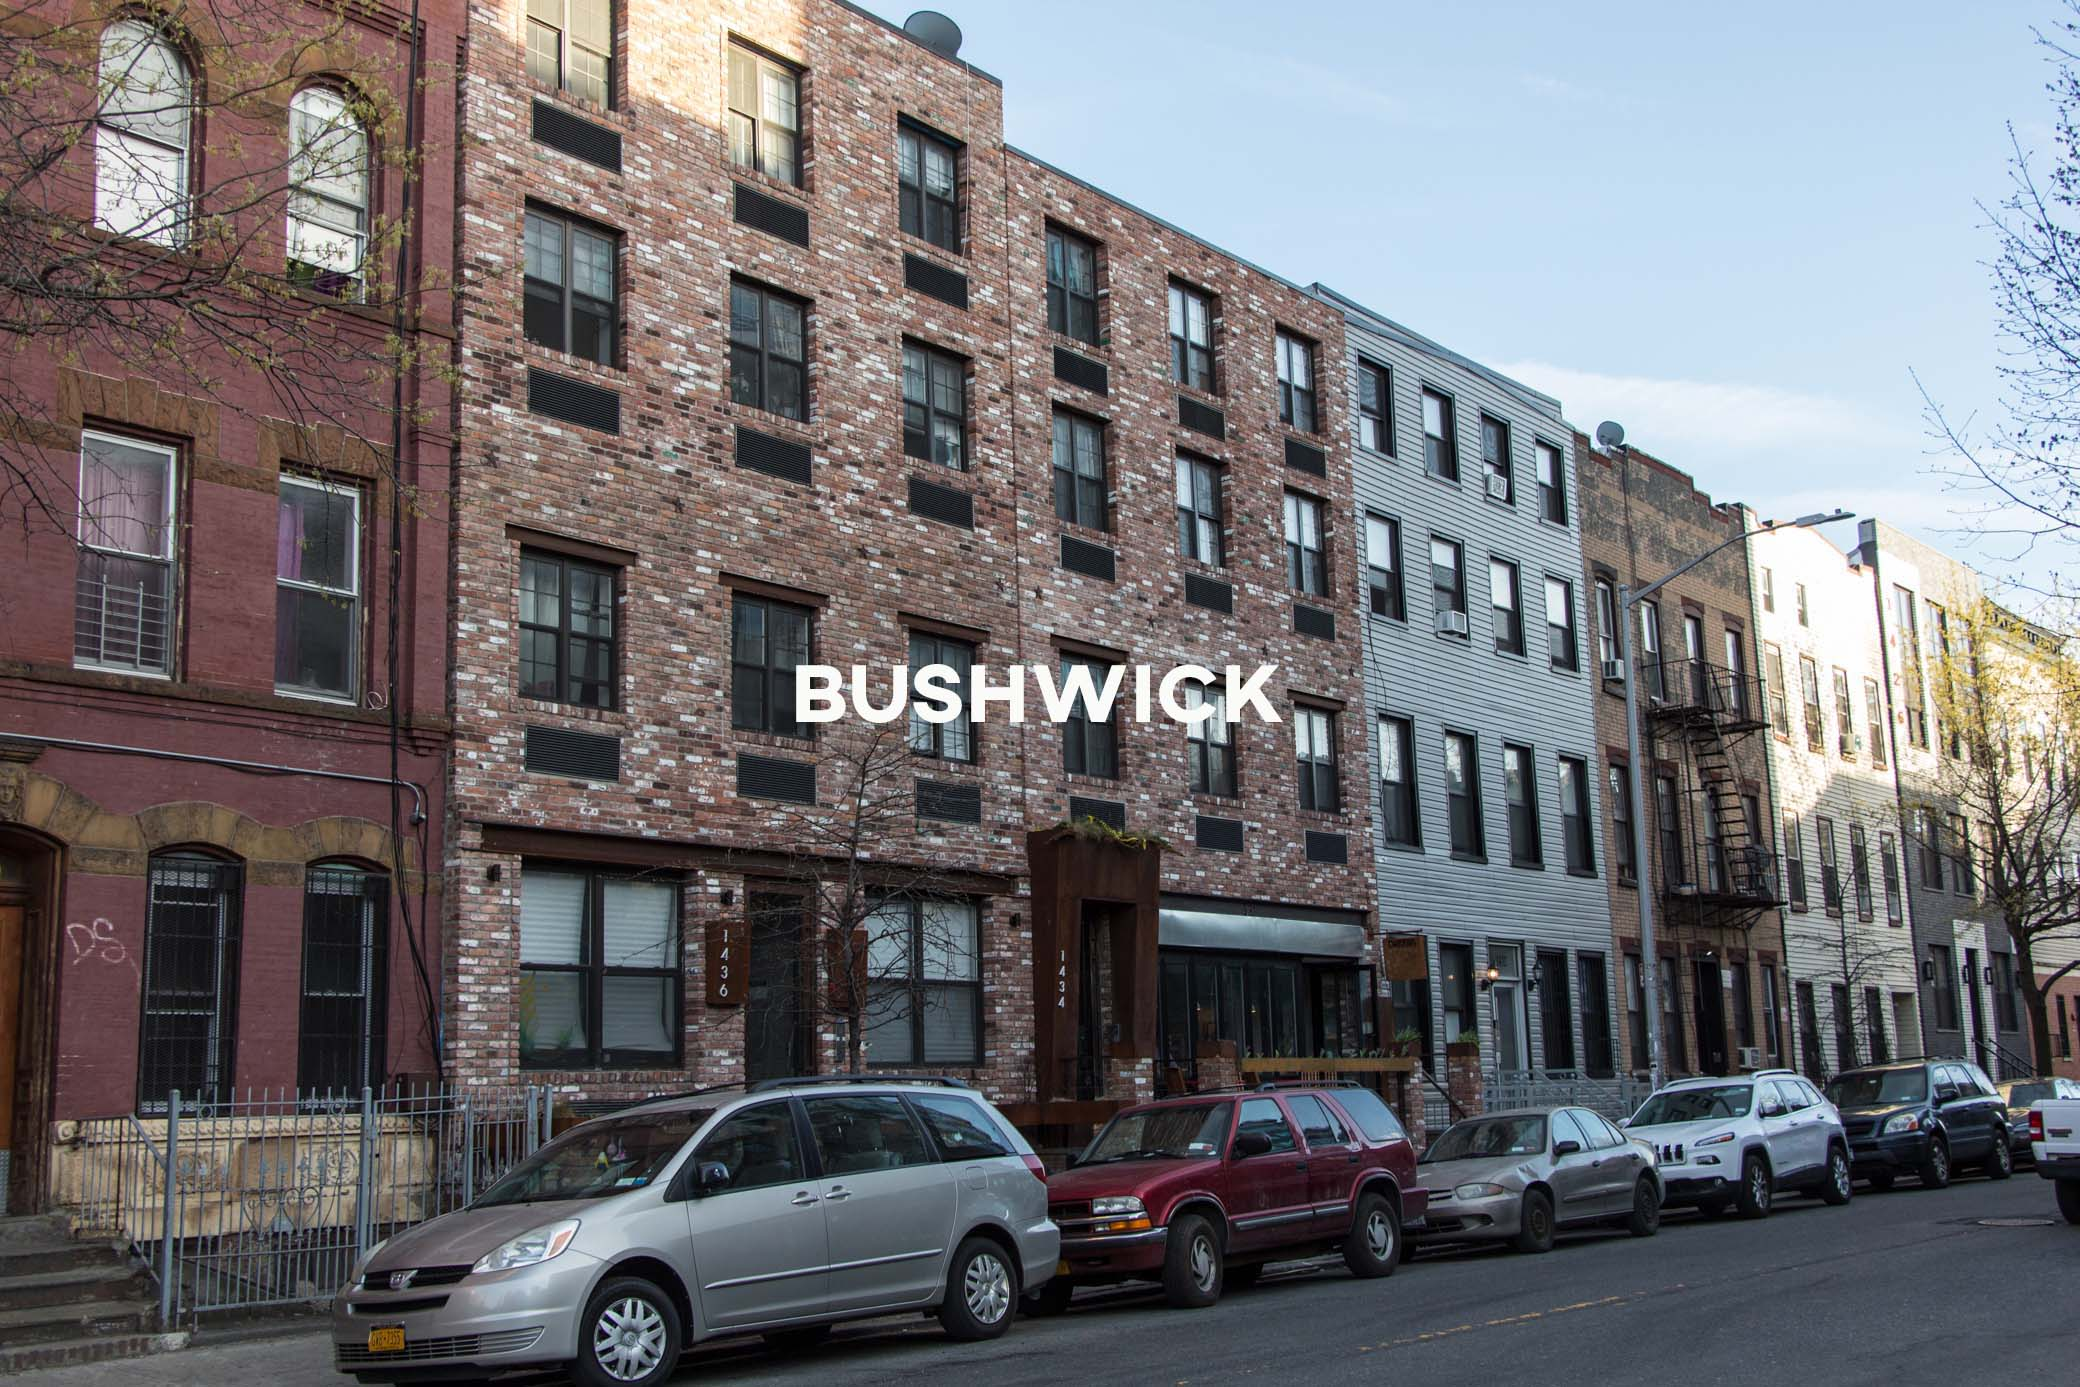 Bushwick - A young, vibrant, and diverse, up-and-coming neighborhood